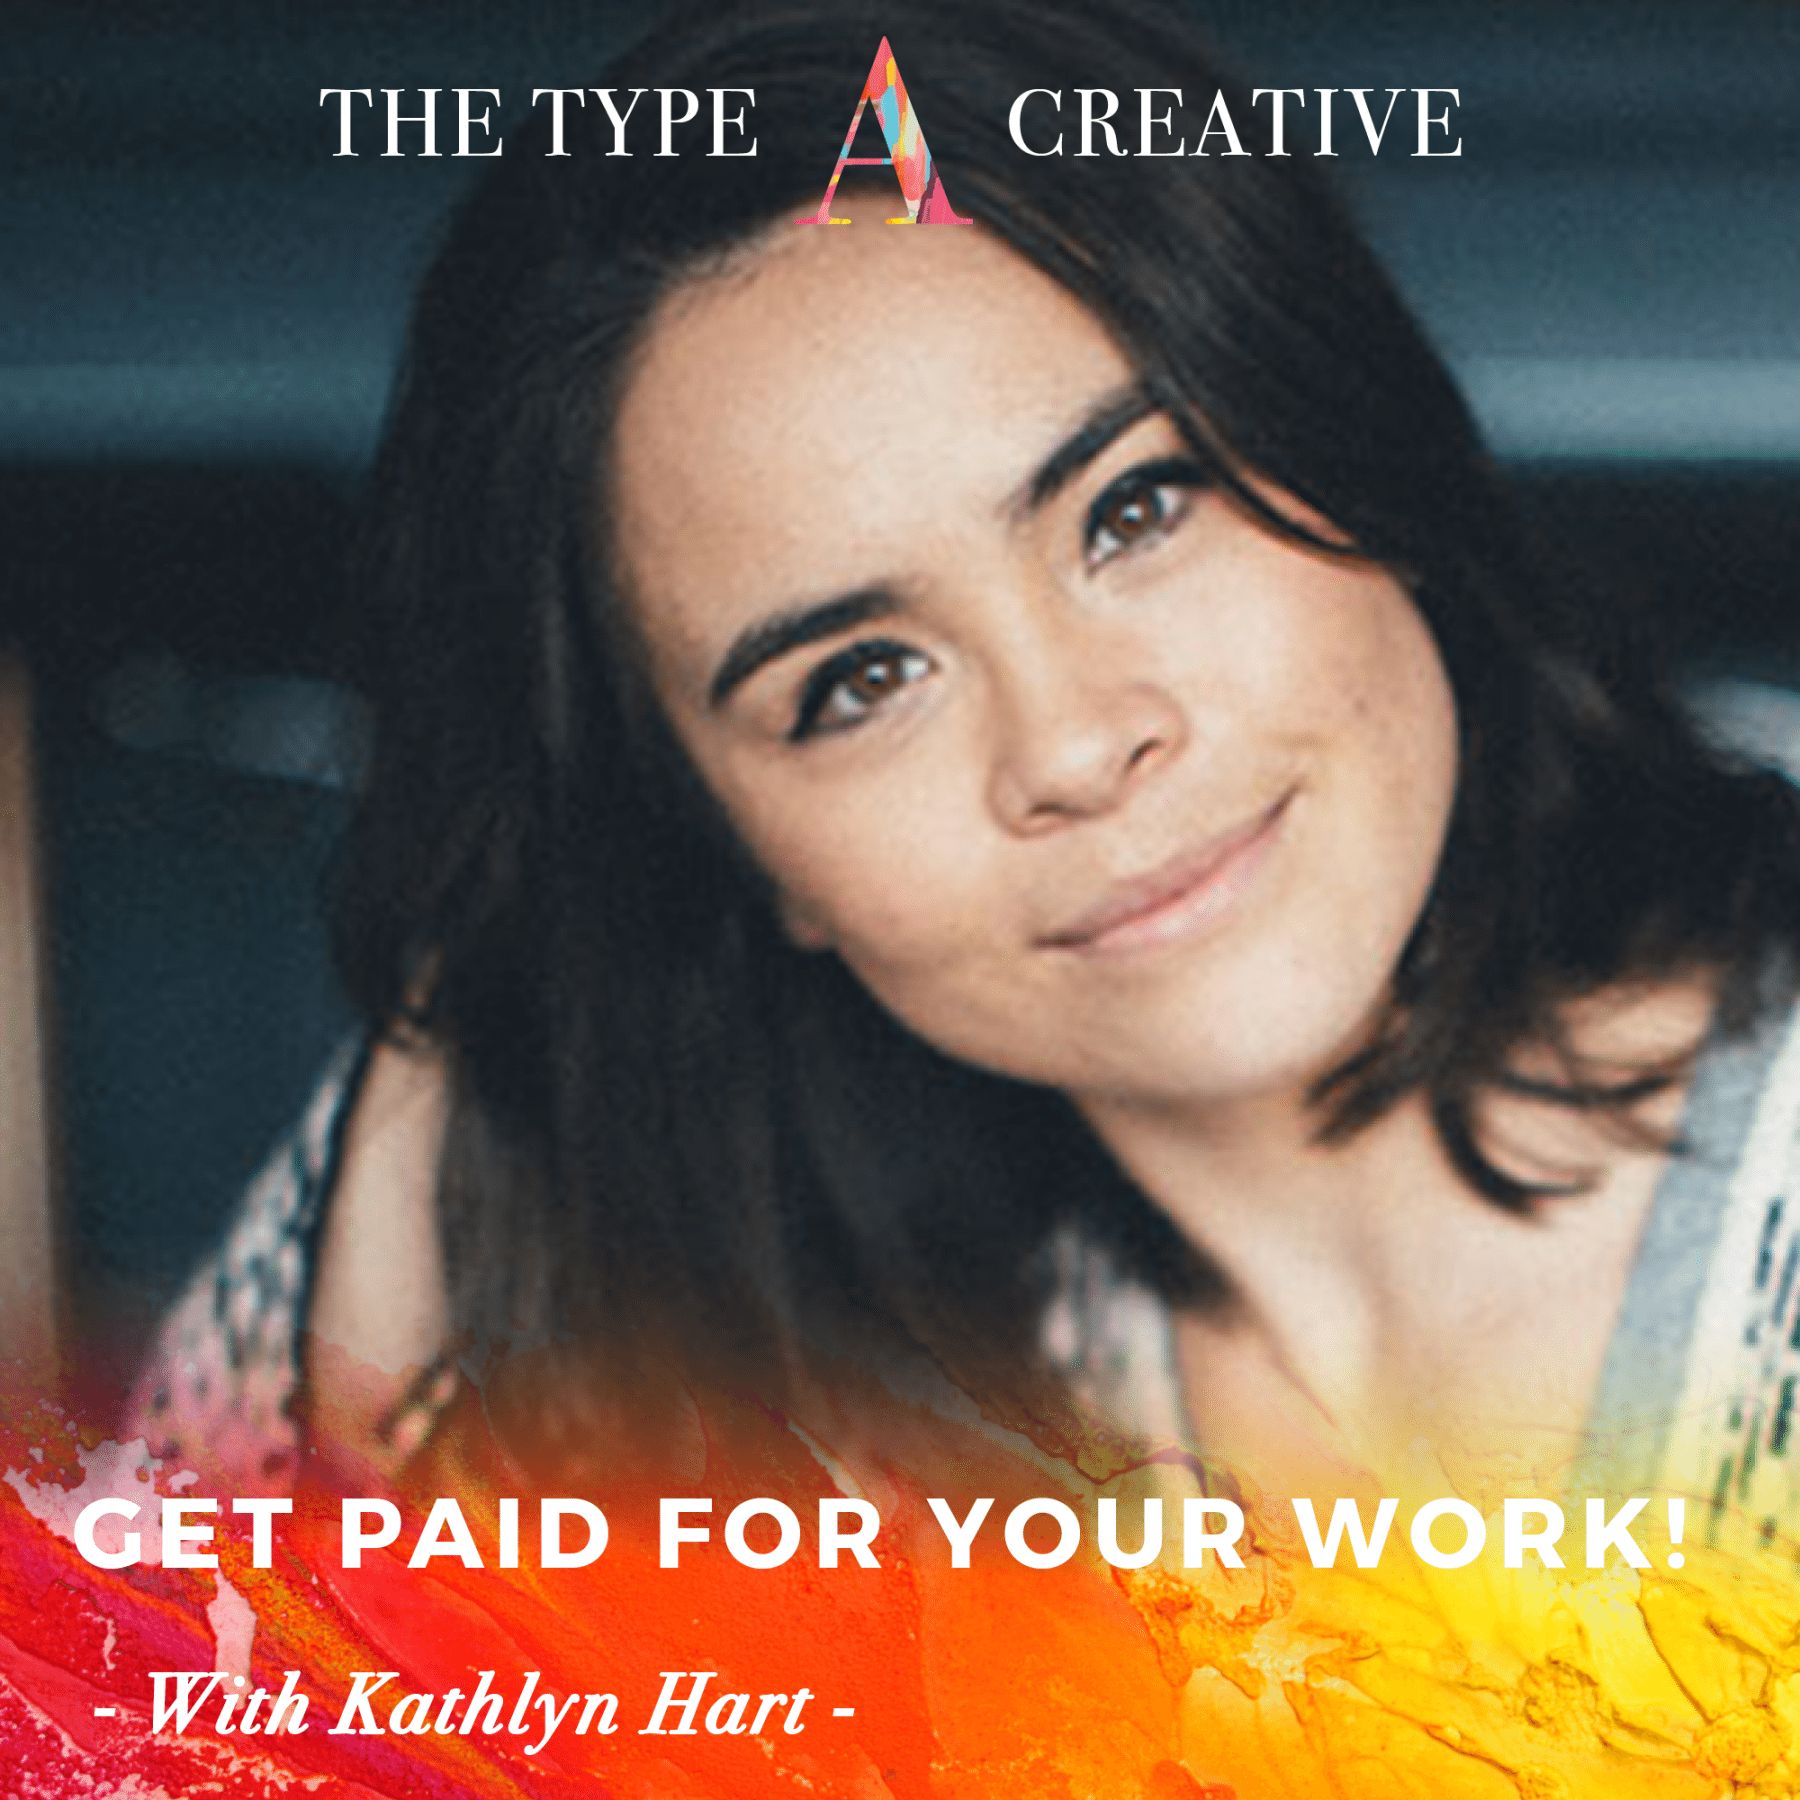 KATHLYN HART – Get Paid for your Work! | Type A Creative Podcast